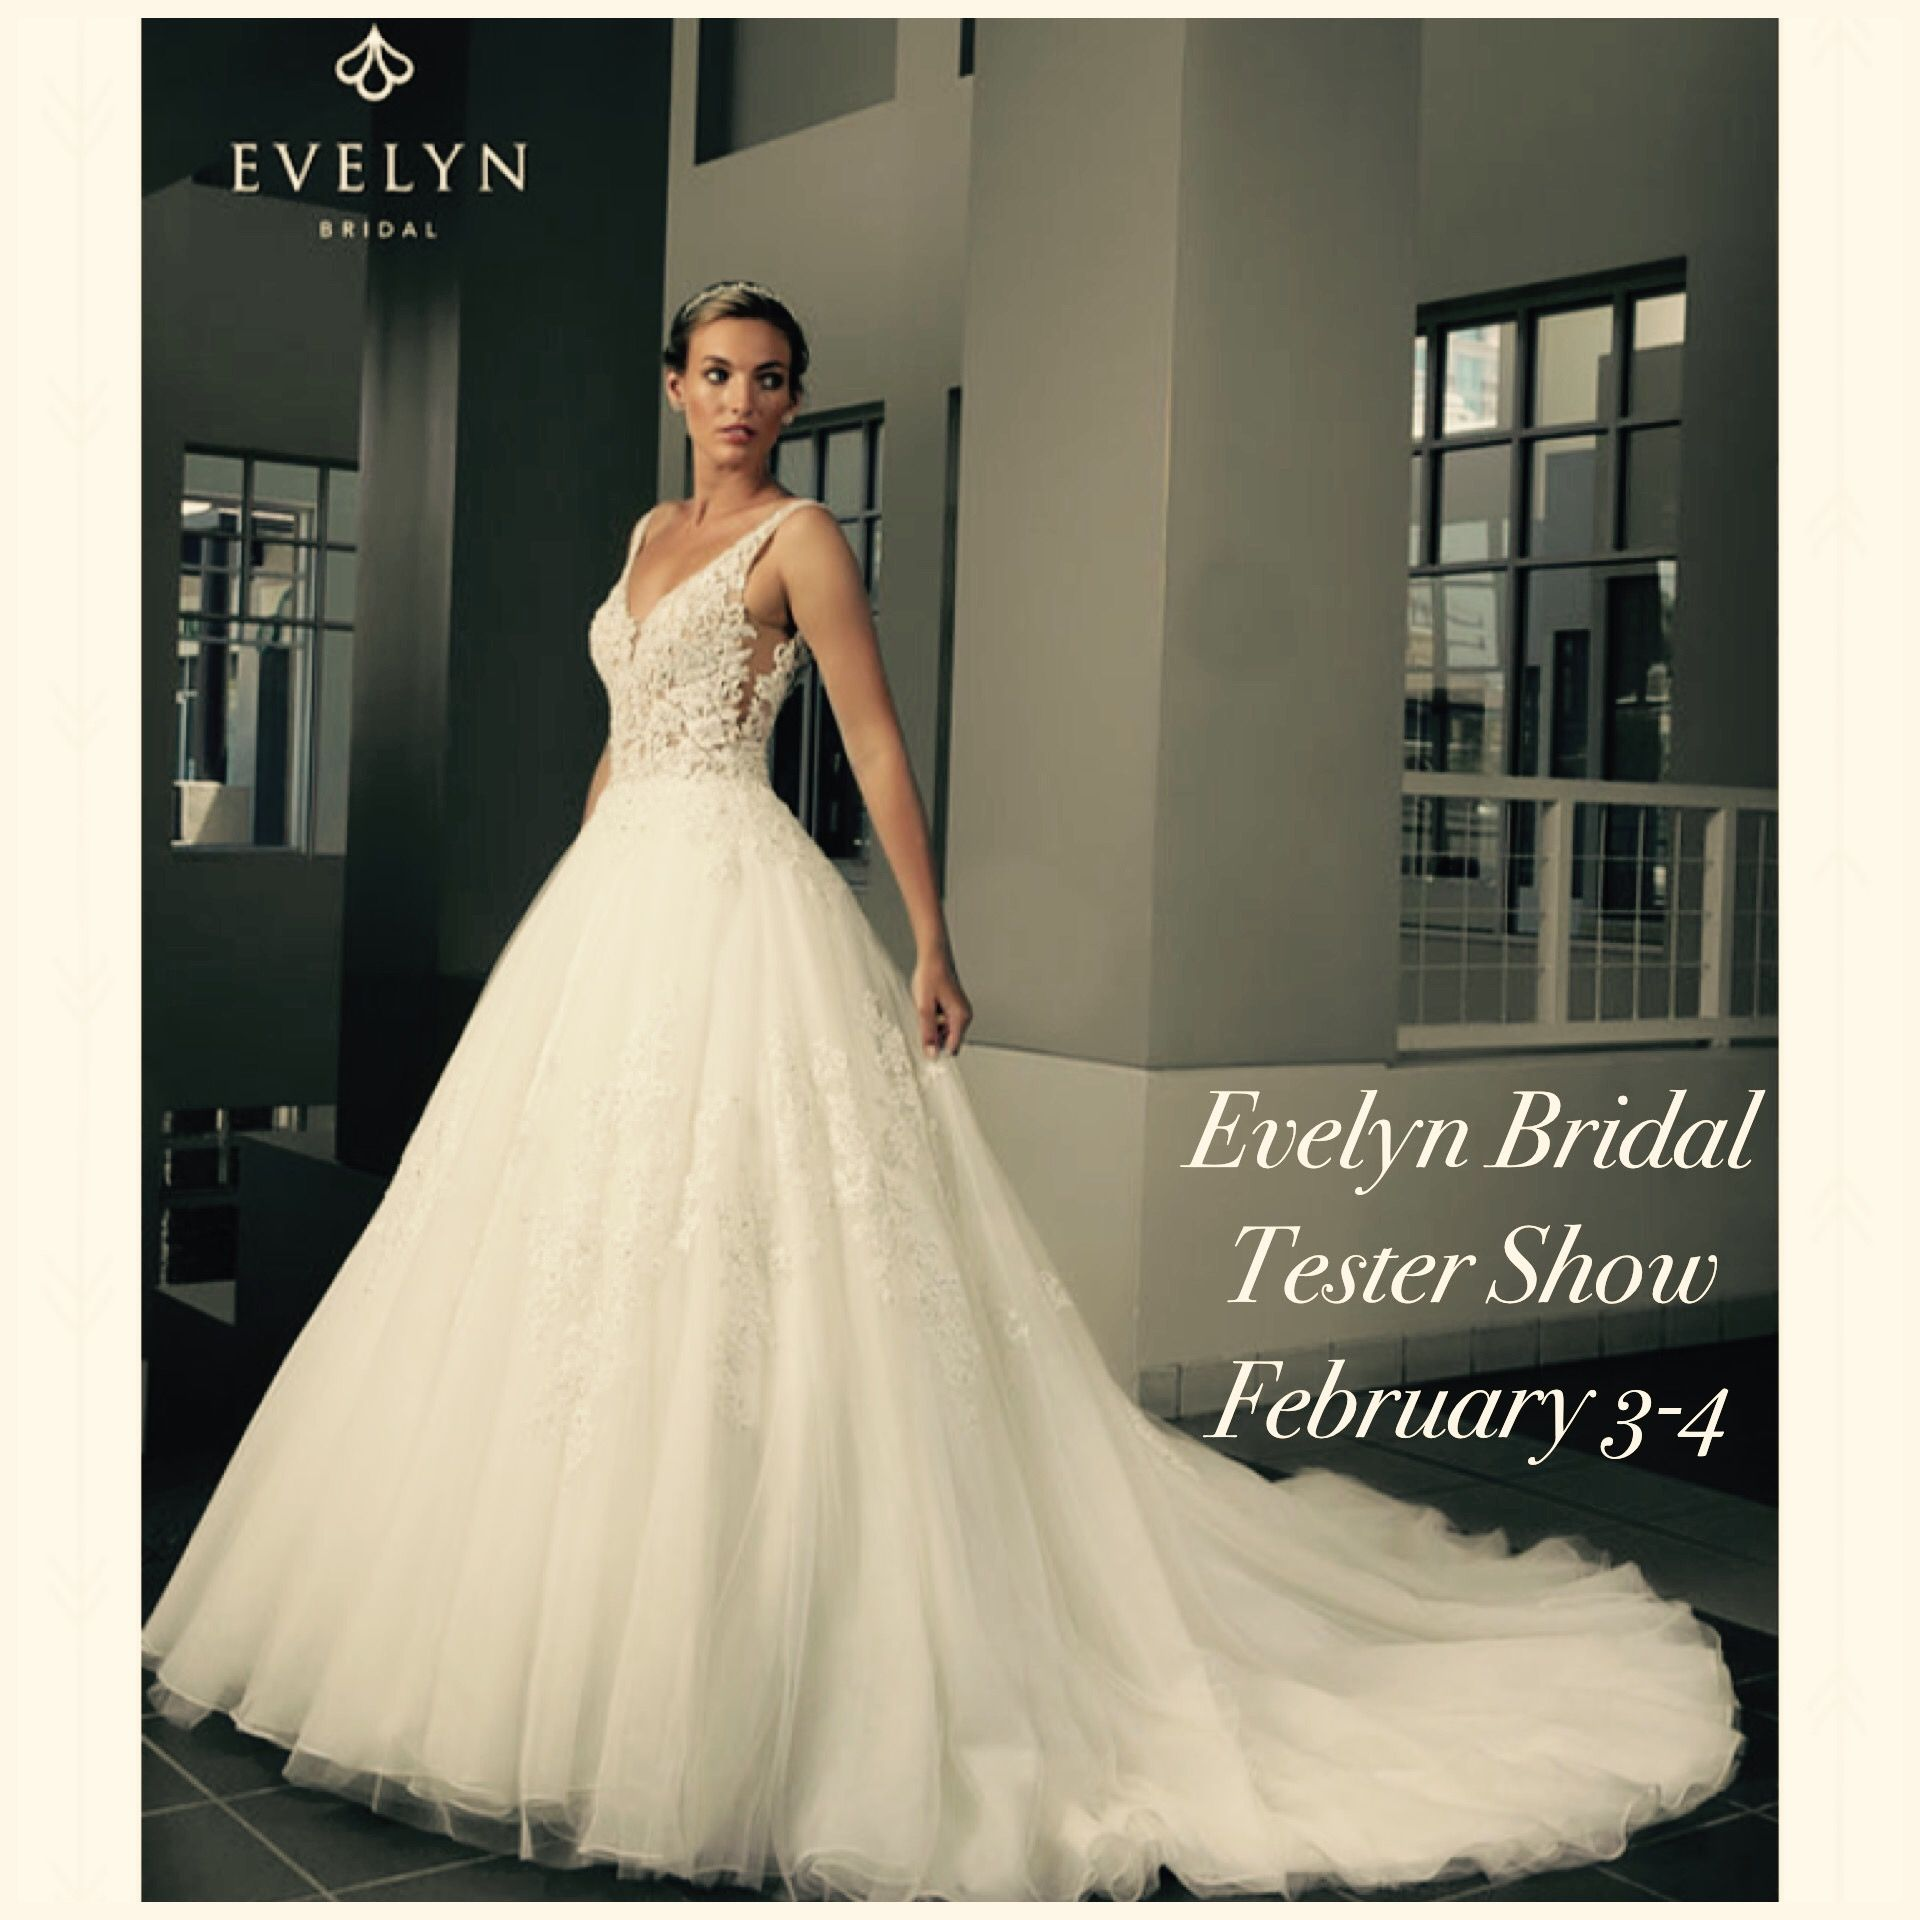 Evelyn Bridal wedding dress bridal trunk show spring 2017 and best ...